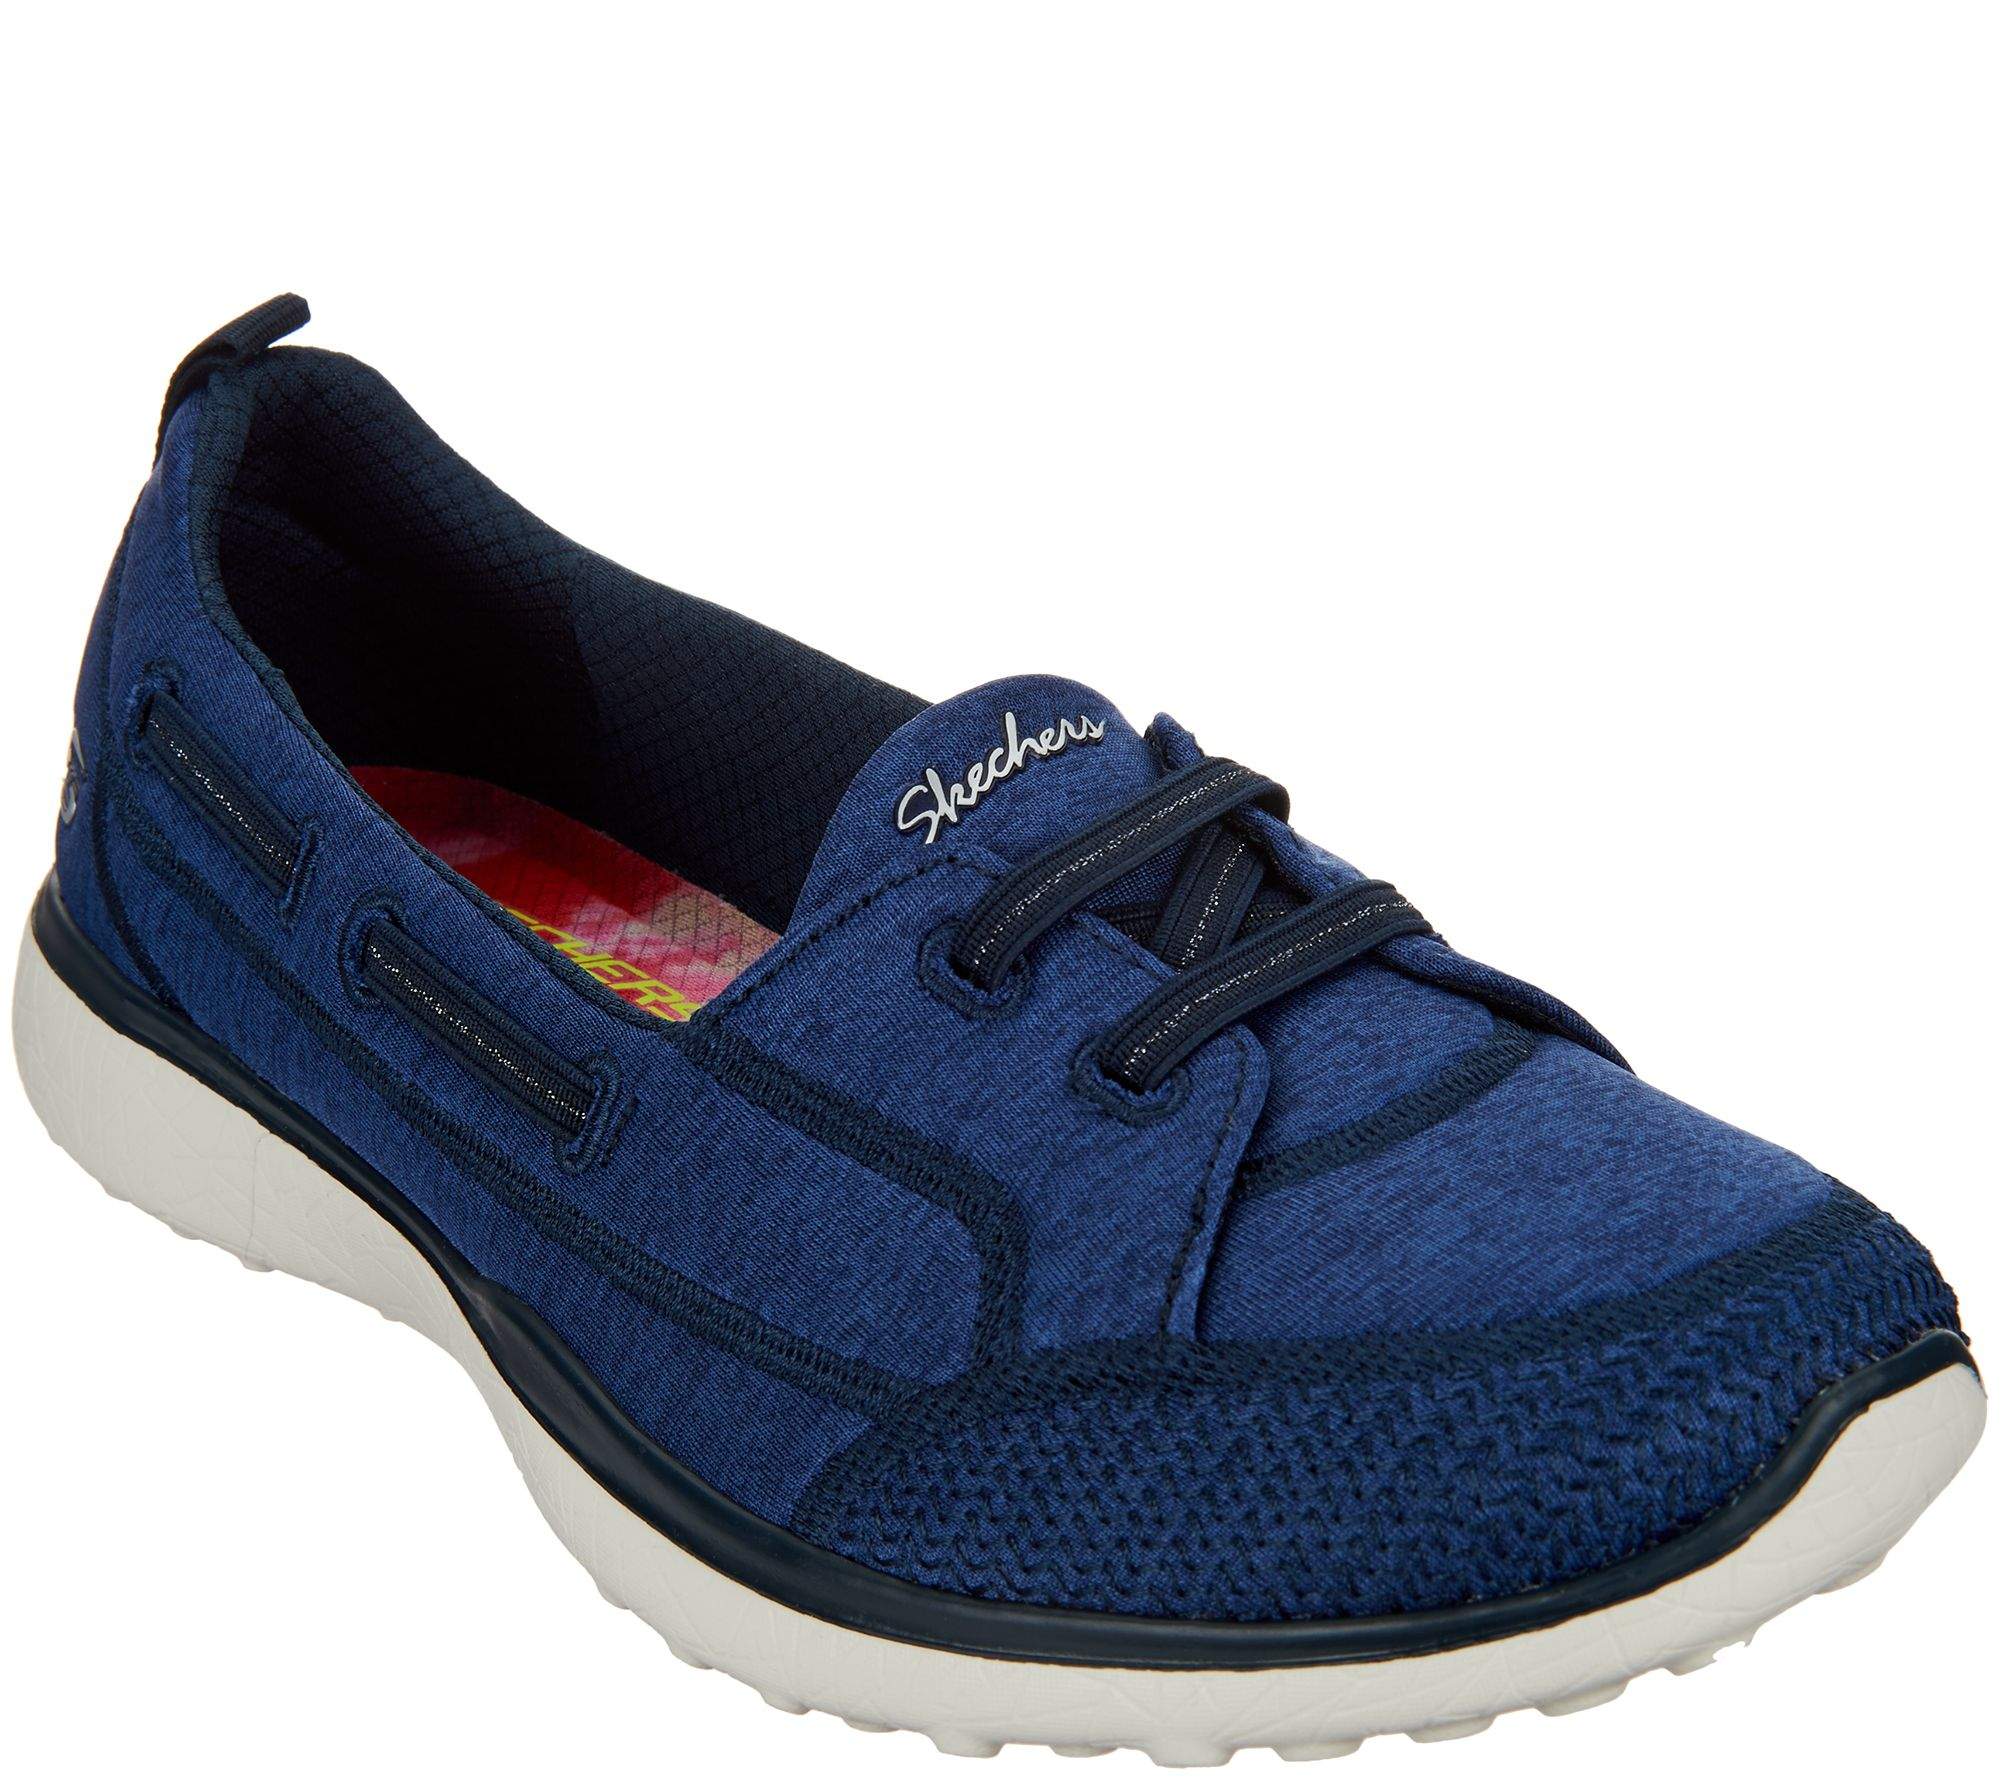 db6f94fb01d1 Skechers Microburst Bungee Slip-On Shoes -Topnotch - Page 1 — QVC.com